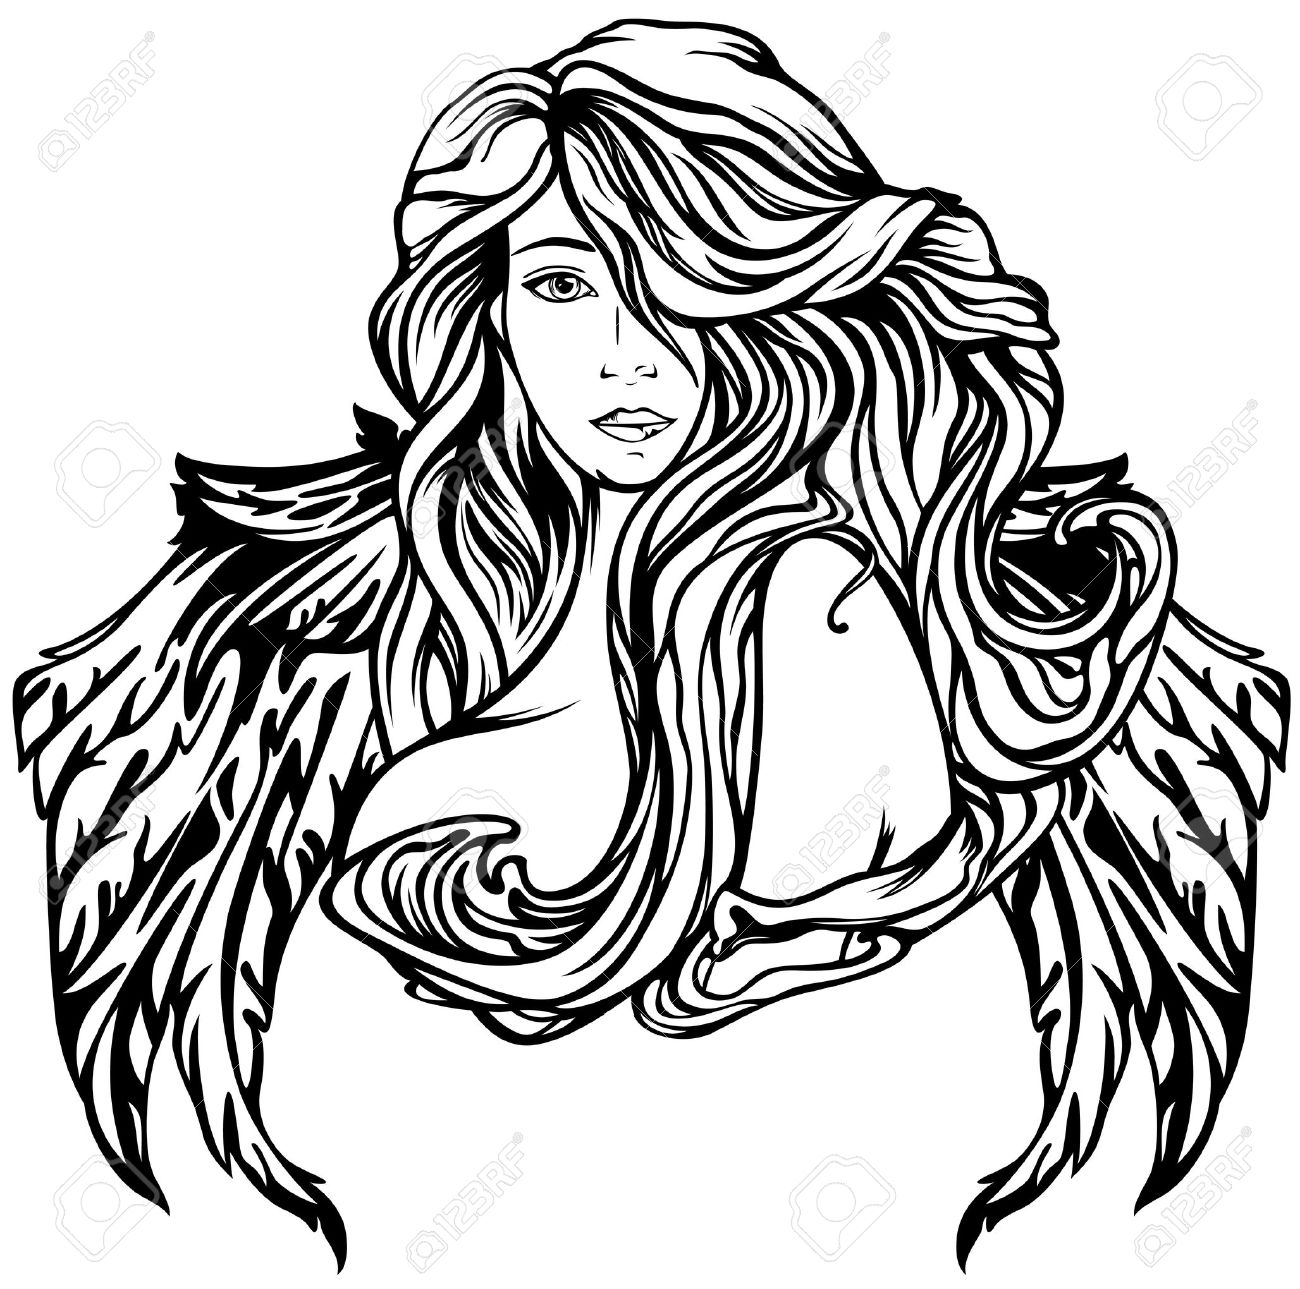 Art nouveau style angel vector illustration black and white winged woman outline stock vector